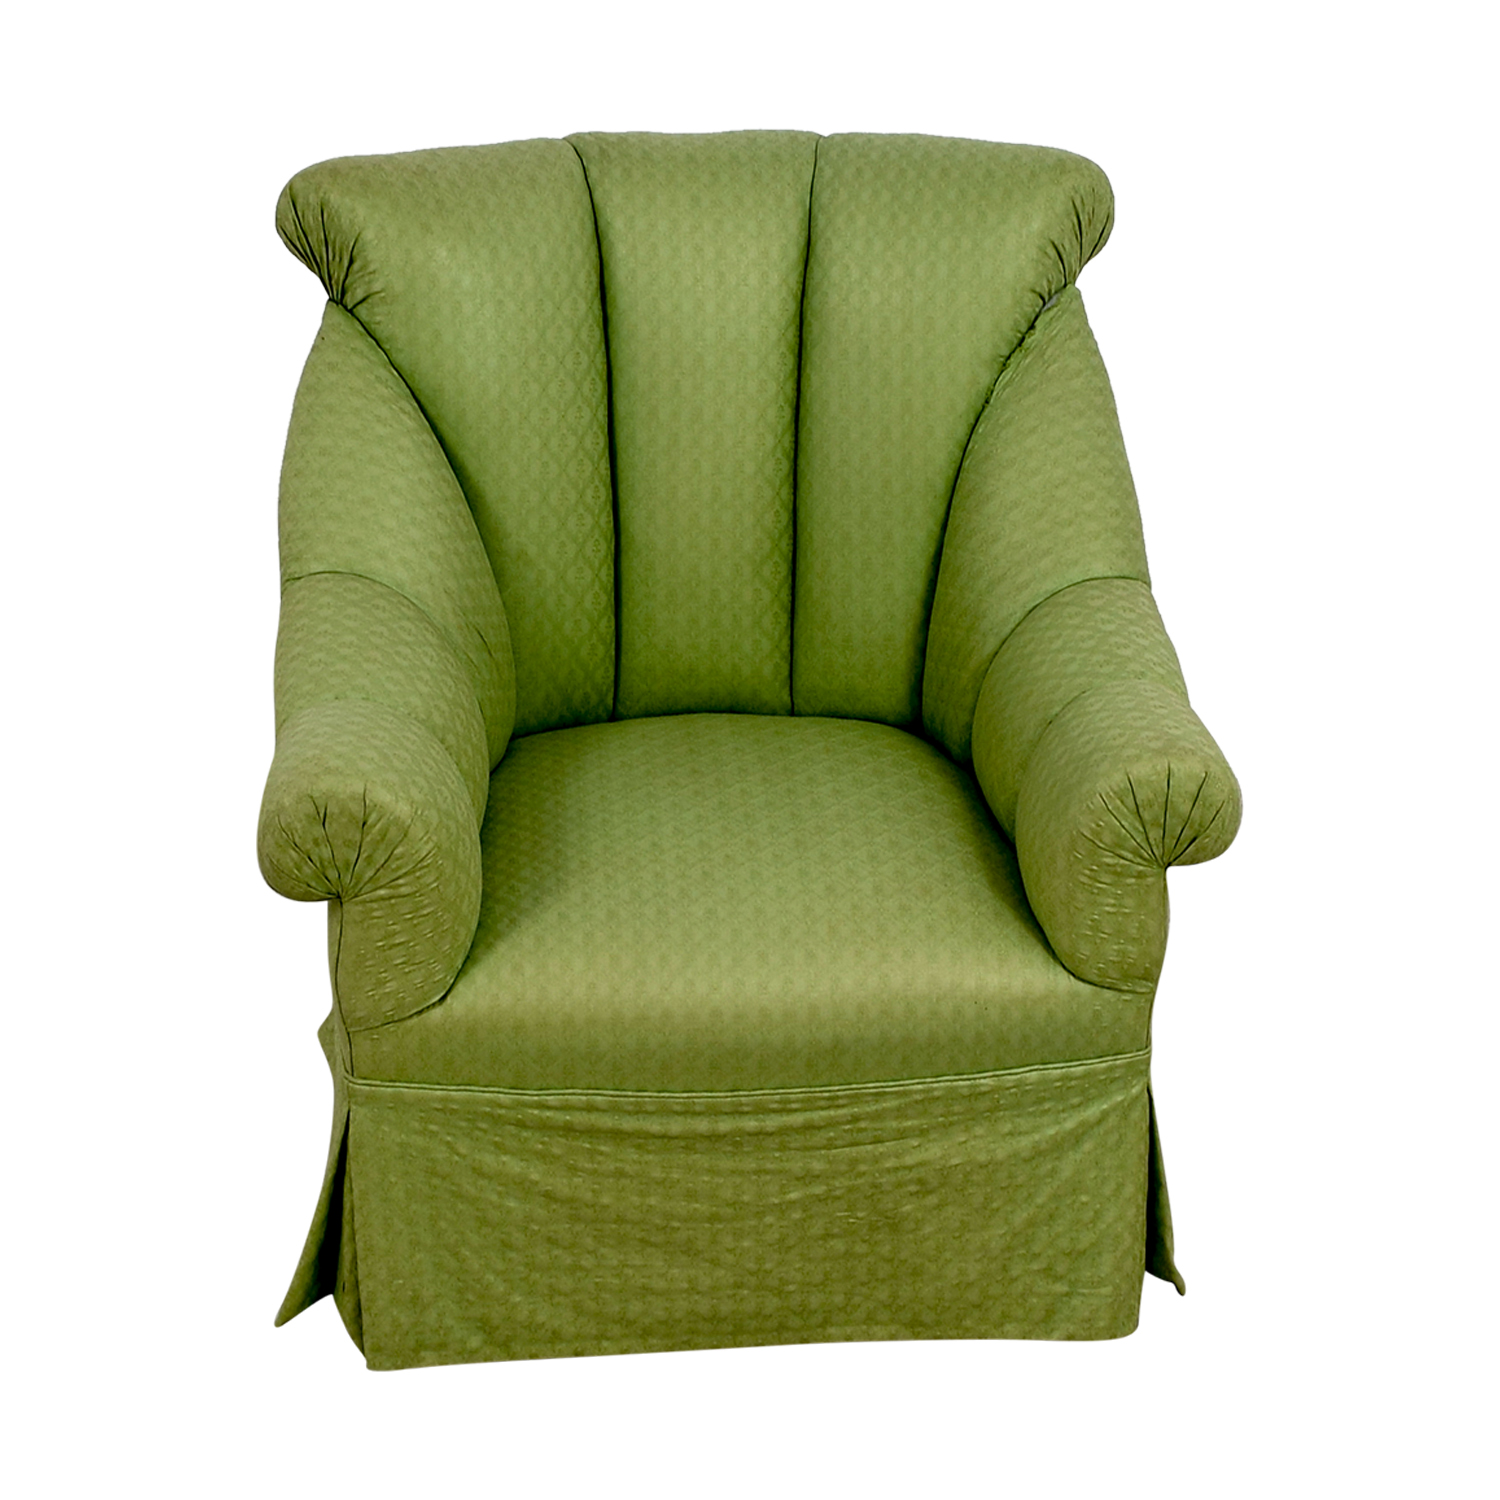 Furniture Masters Furniture Masters Green Skirted Armchair nyc